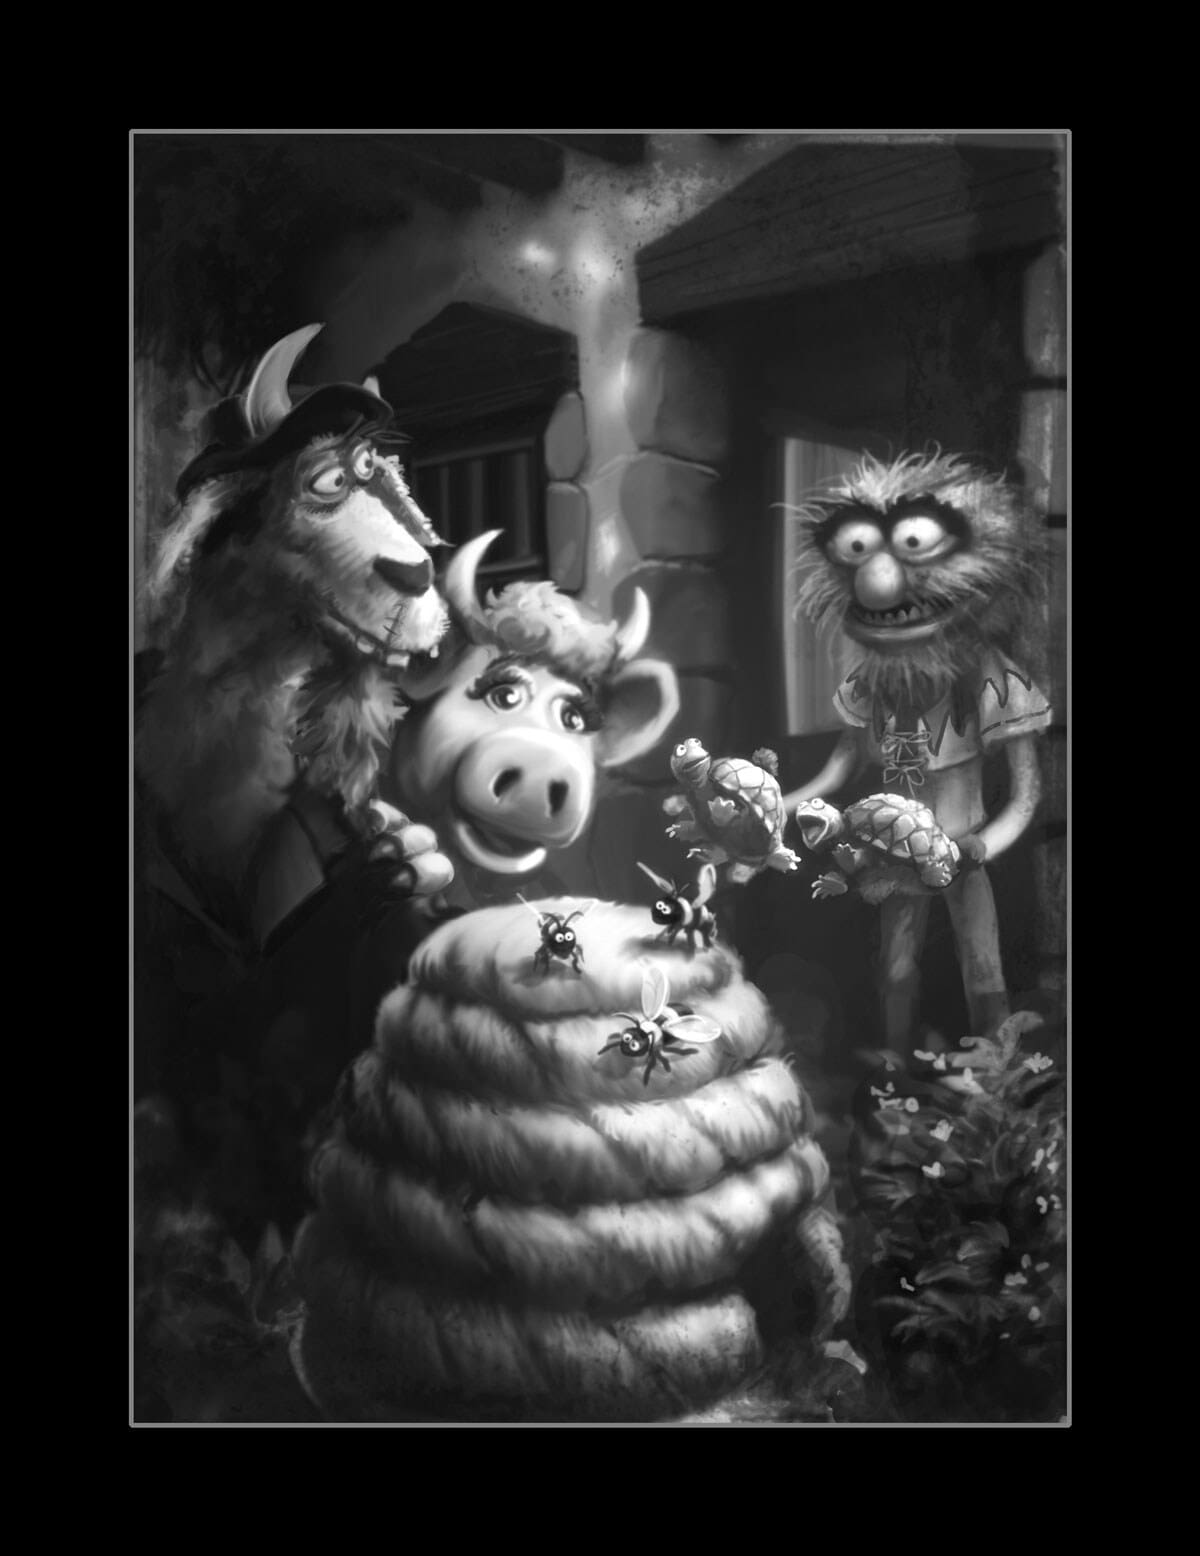 Black and white illustration Animal with Clueless Morgan from Muppet Treasure Island